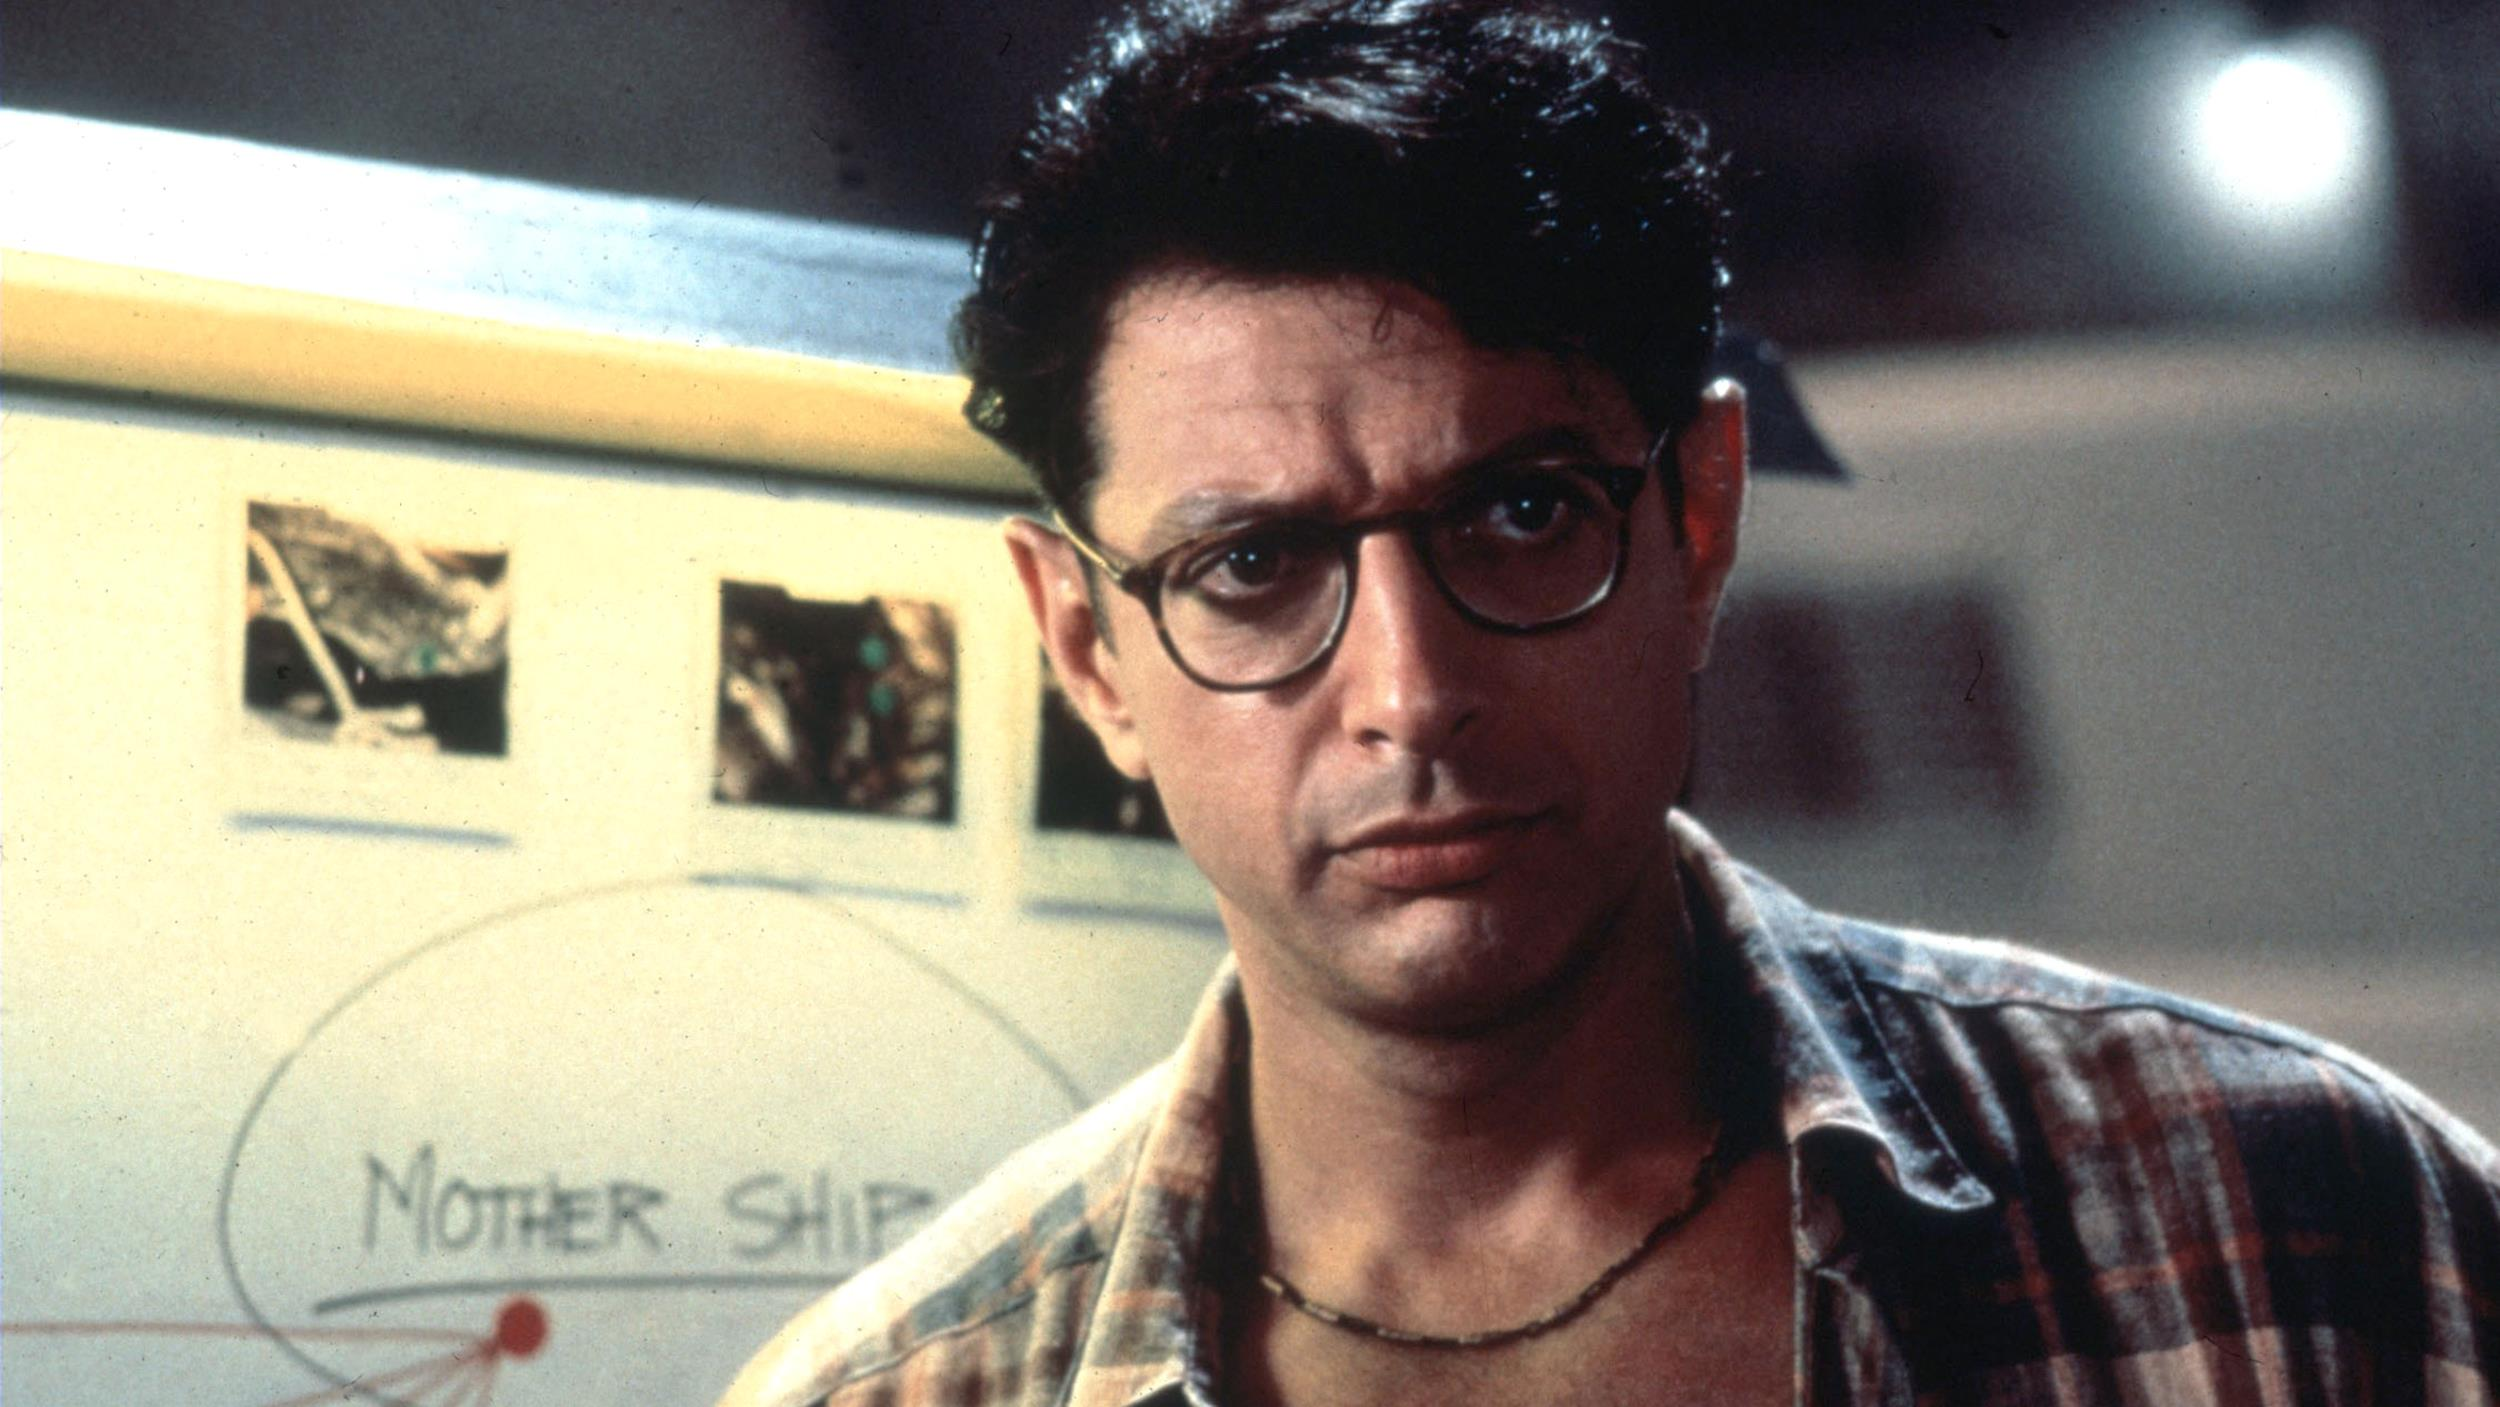 2d274907933867-jeff-goldblum-independence-day-today-150304_b7ec84106e11db164b0546141f85da55